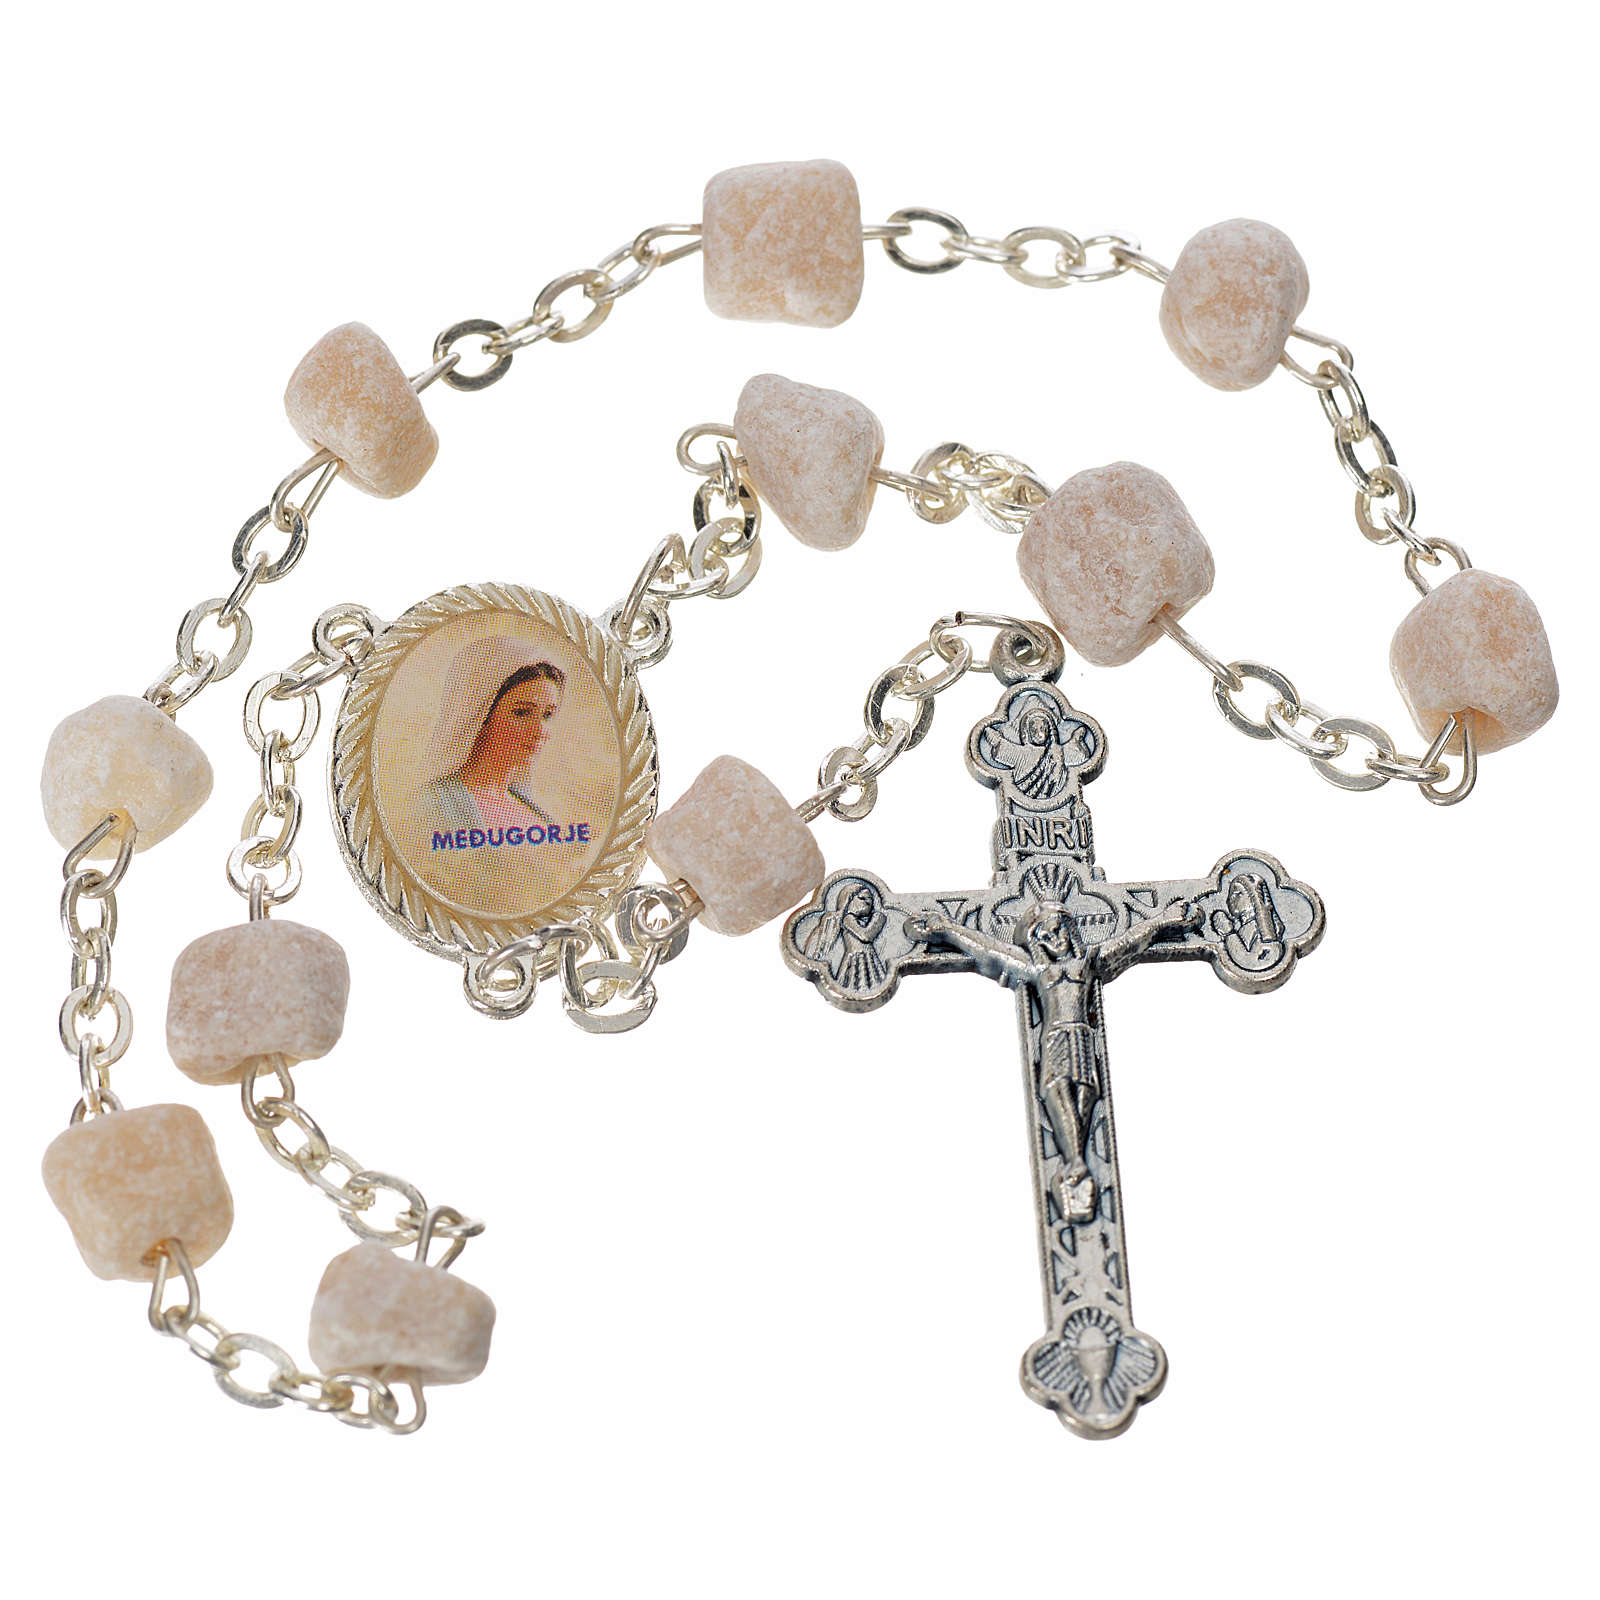 Single-decade Medjugorje rosary white stone, rounded medal 4